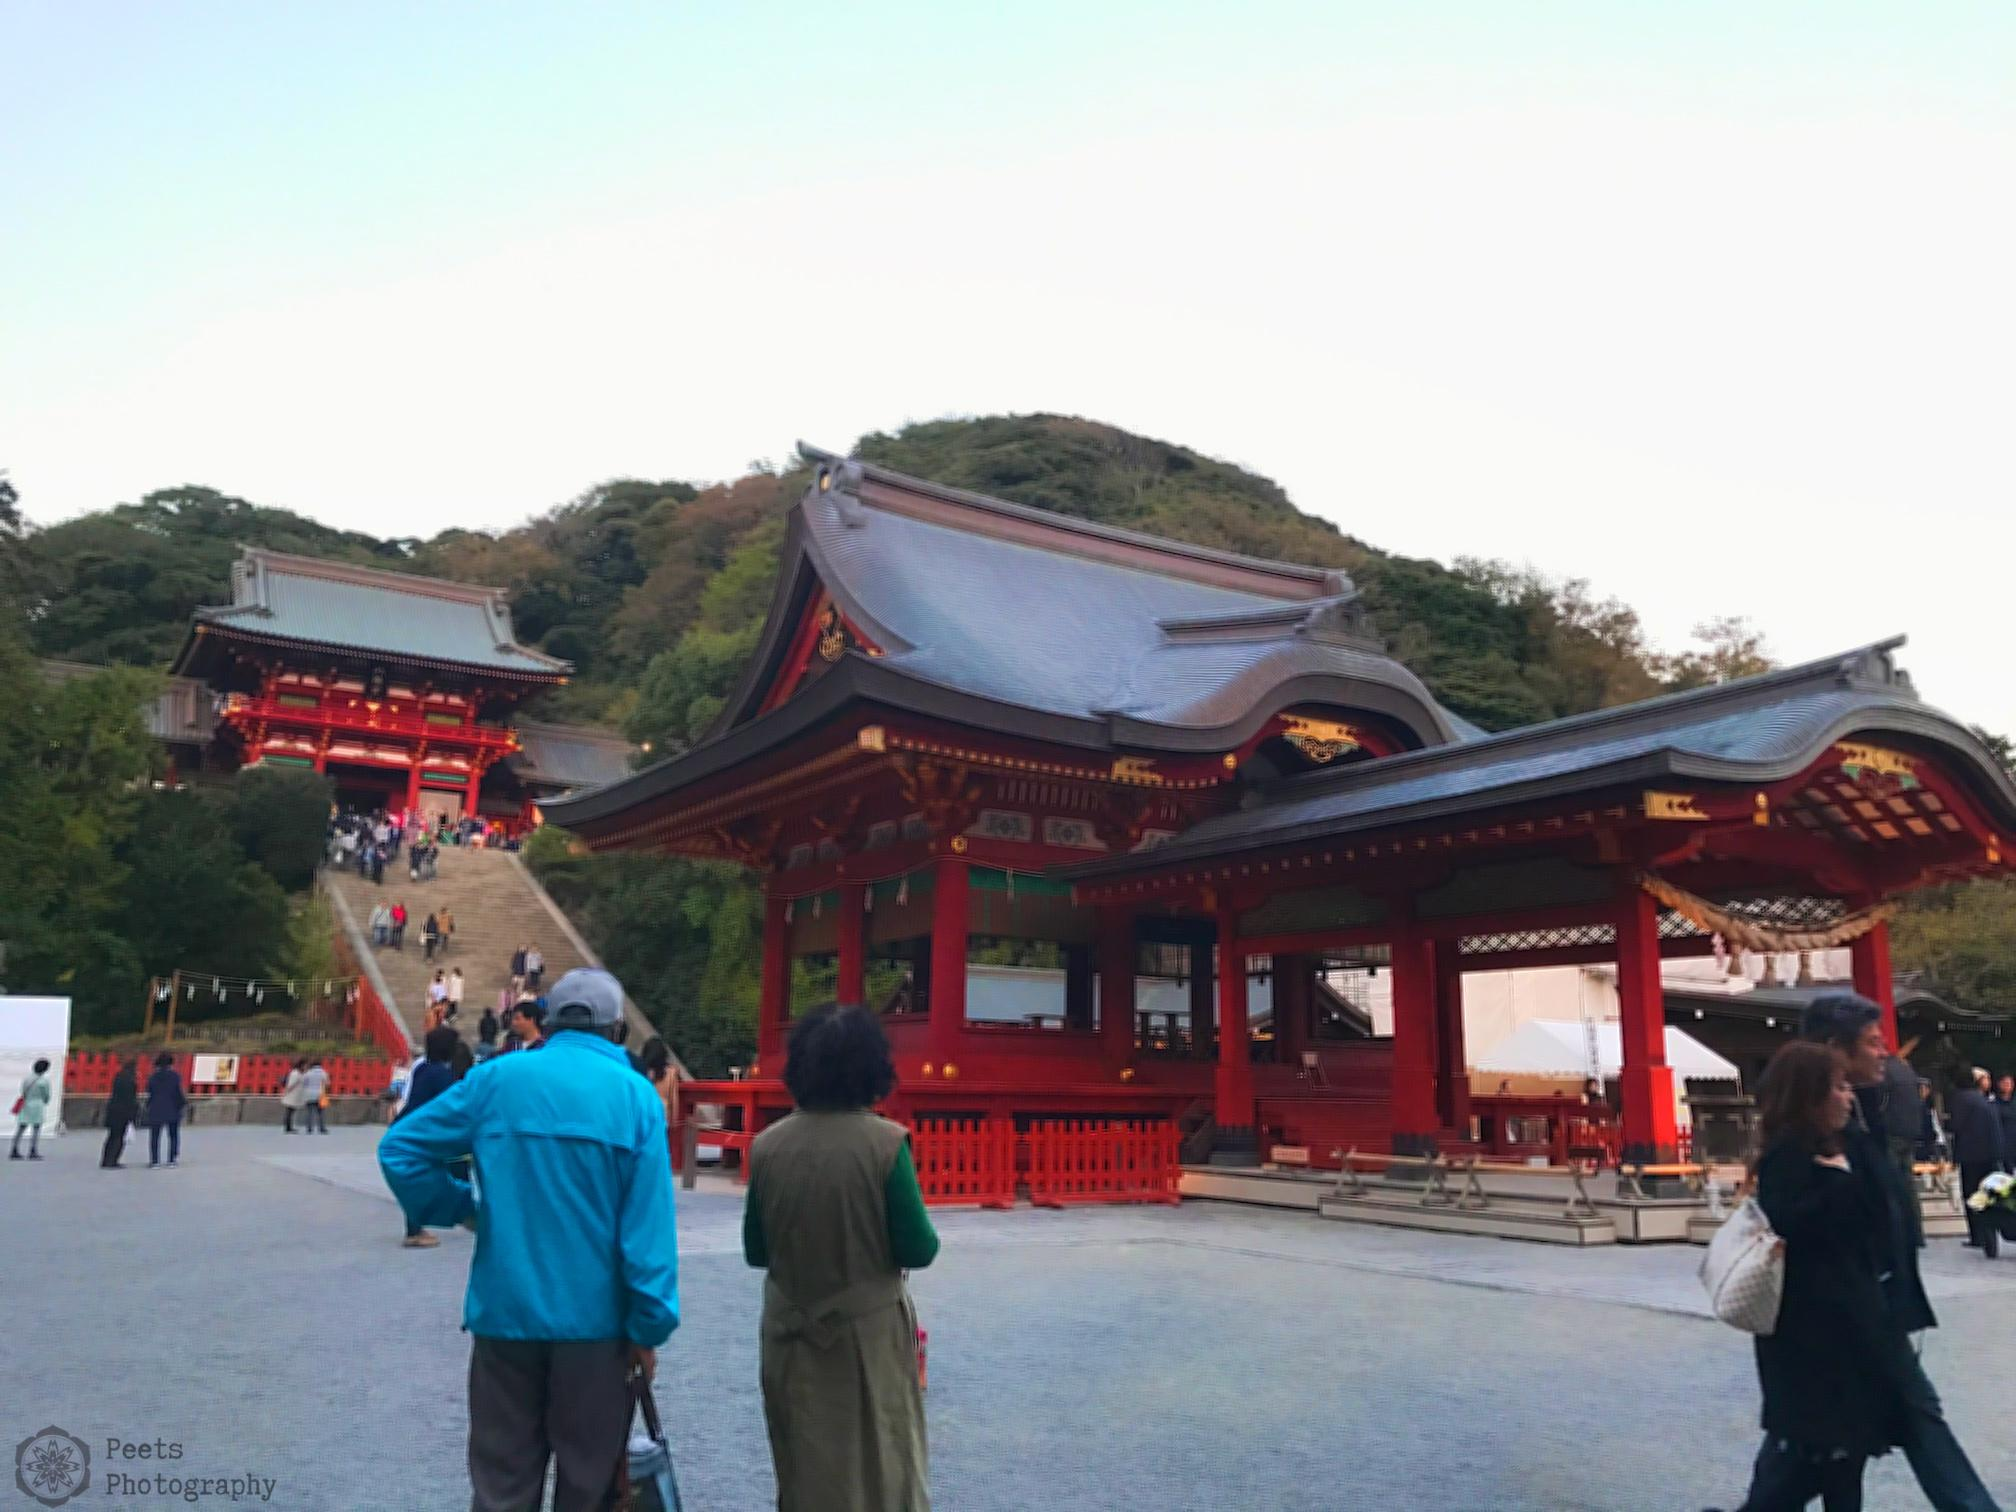 A side view of the Tsurugaoka Hachimangū Shrine